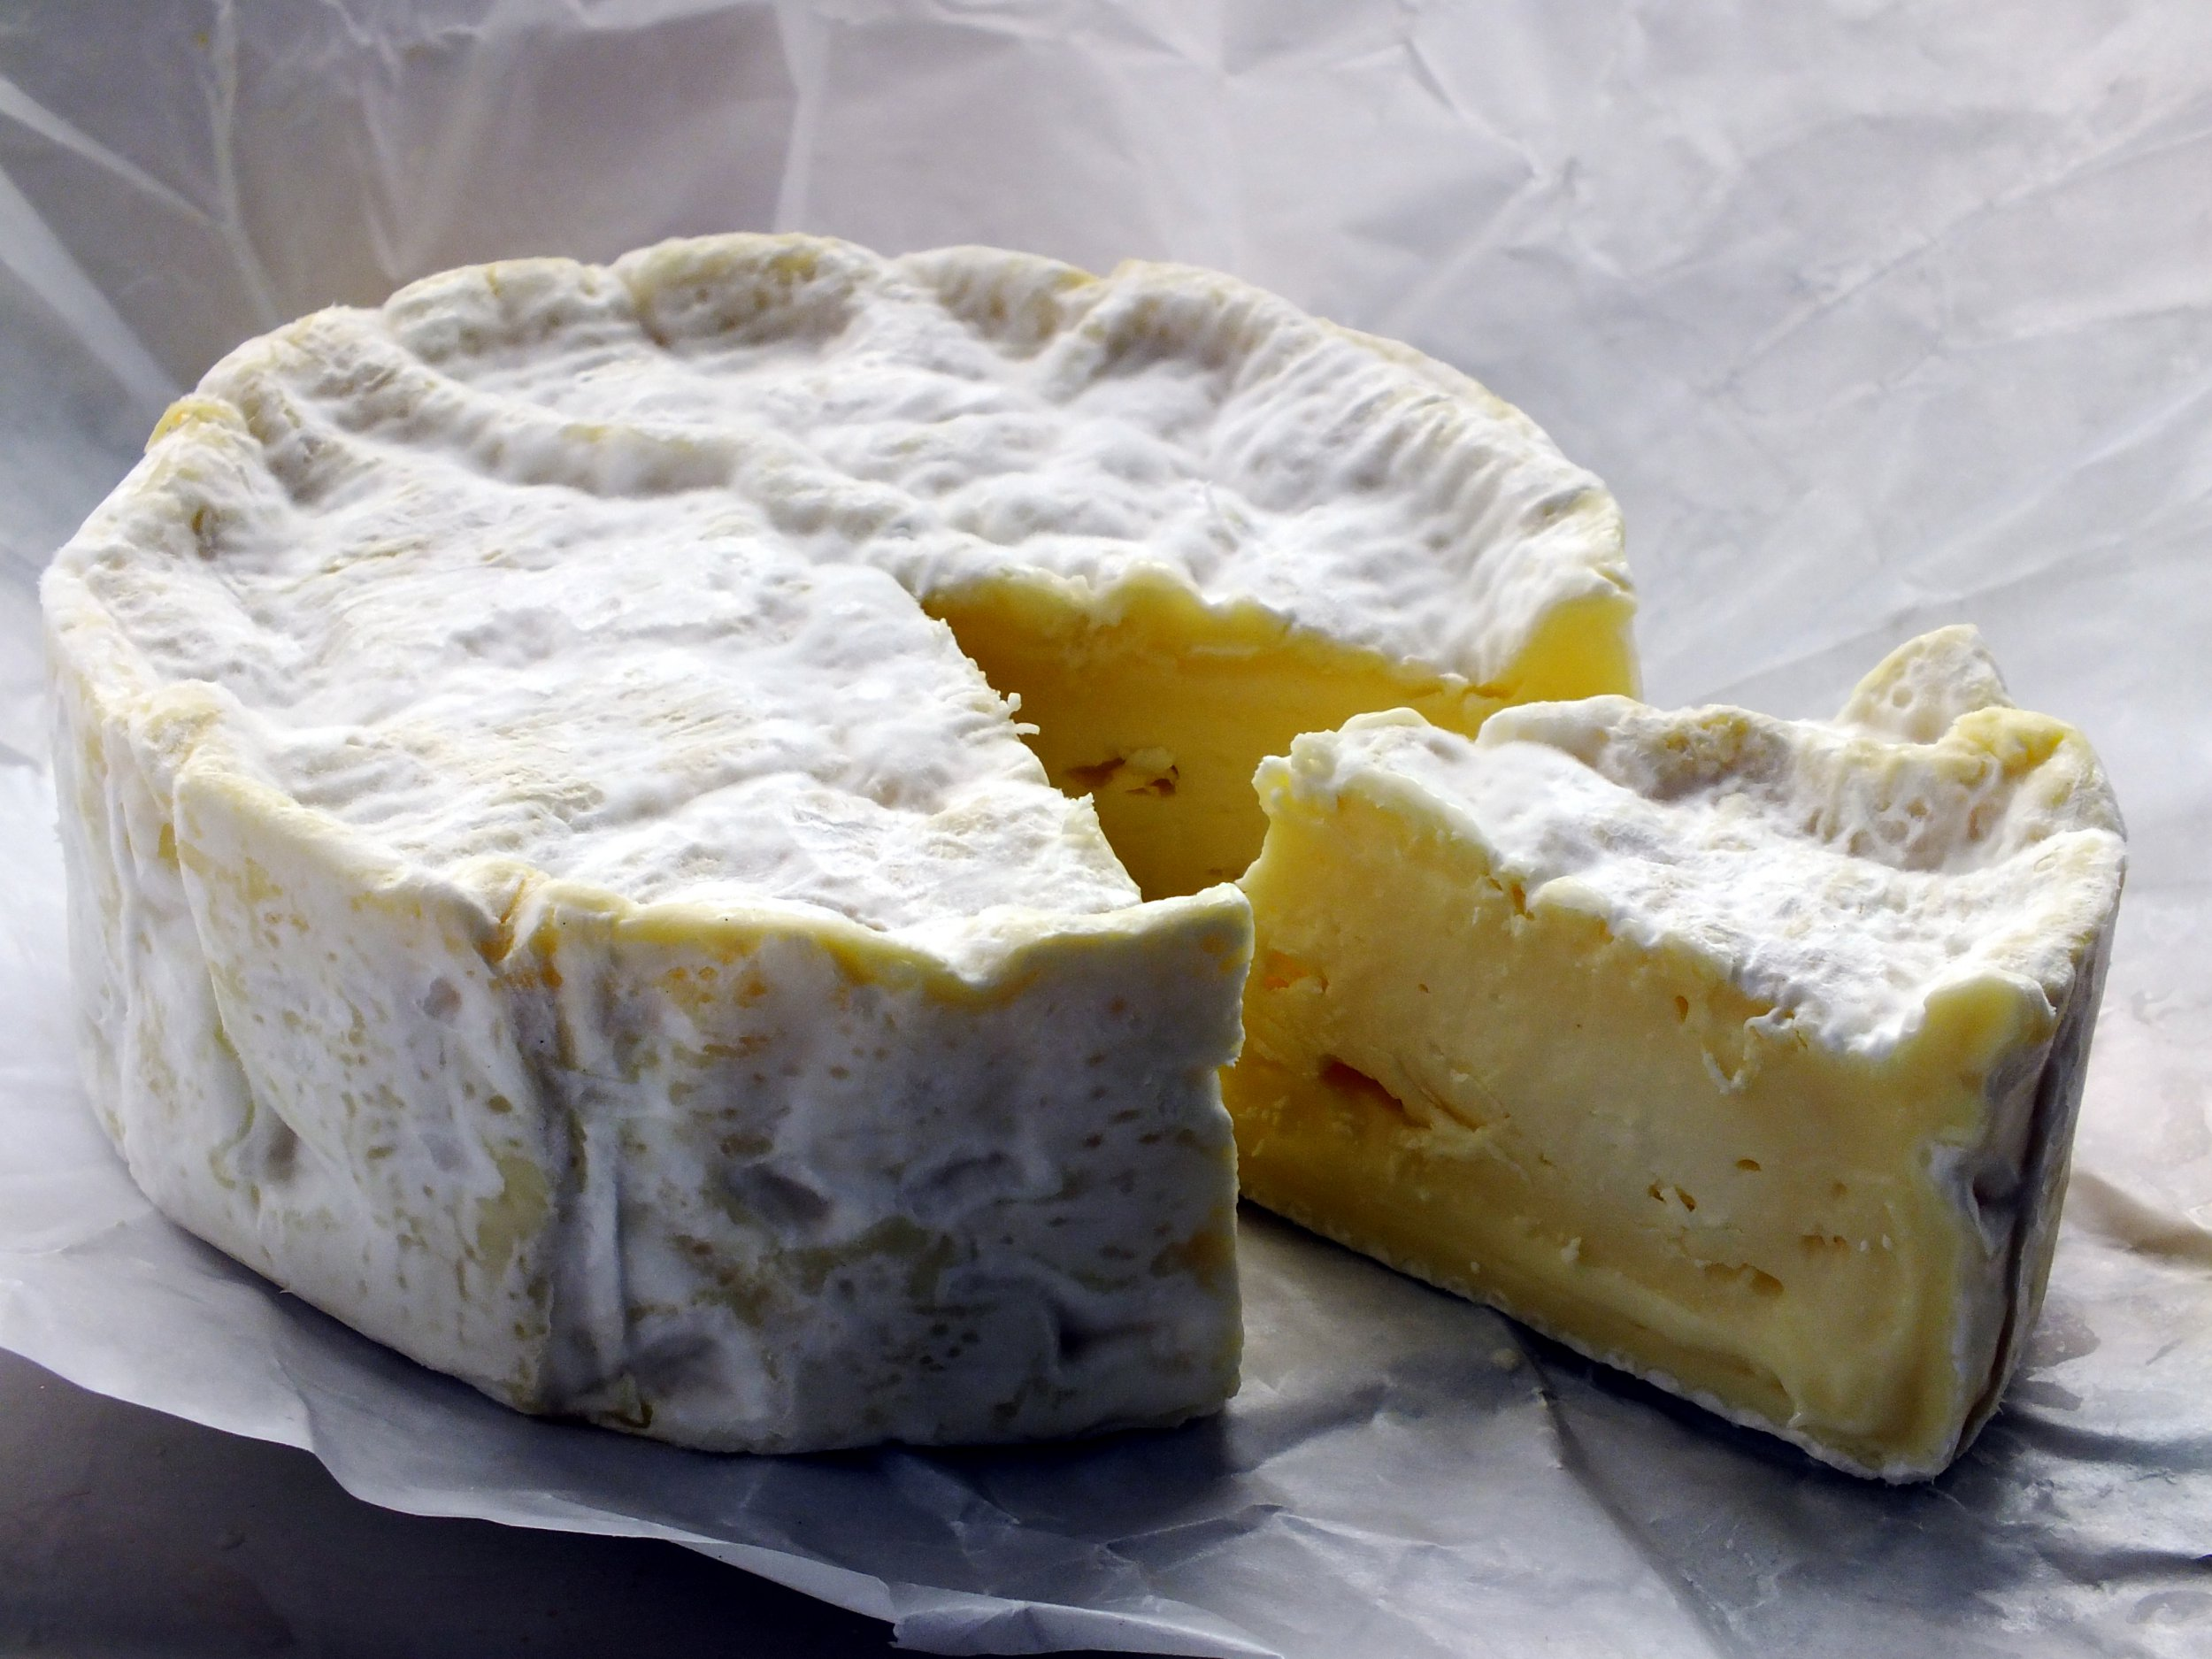 Camembert. (Photo by: BSIP/UIG via Getty Images)